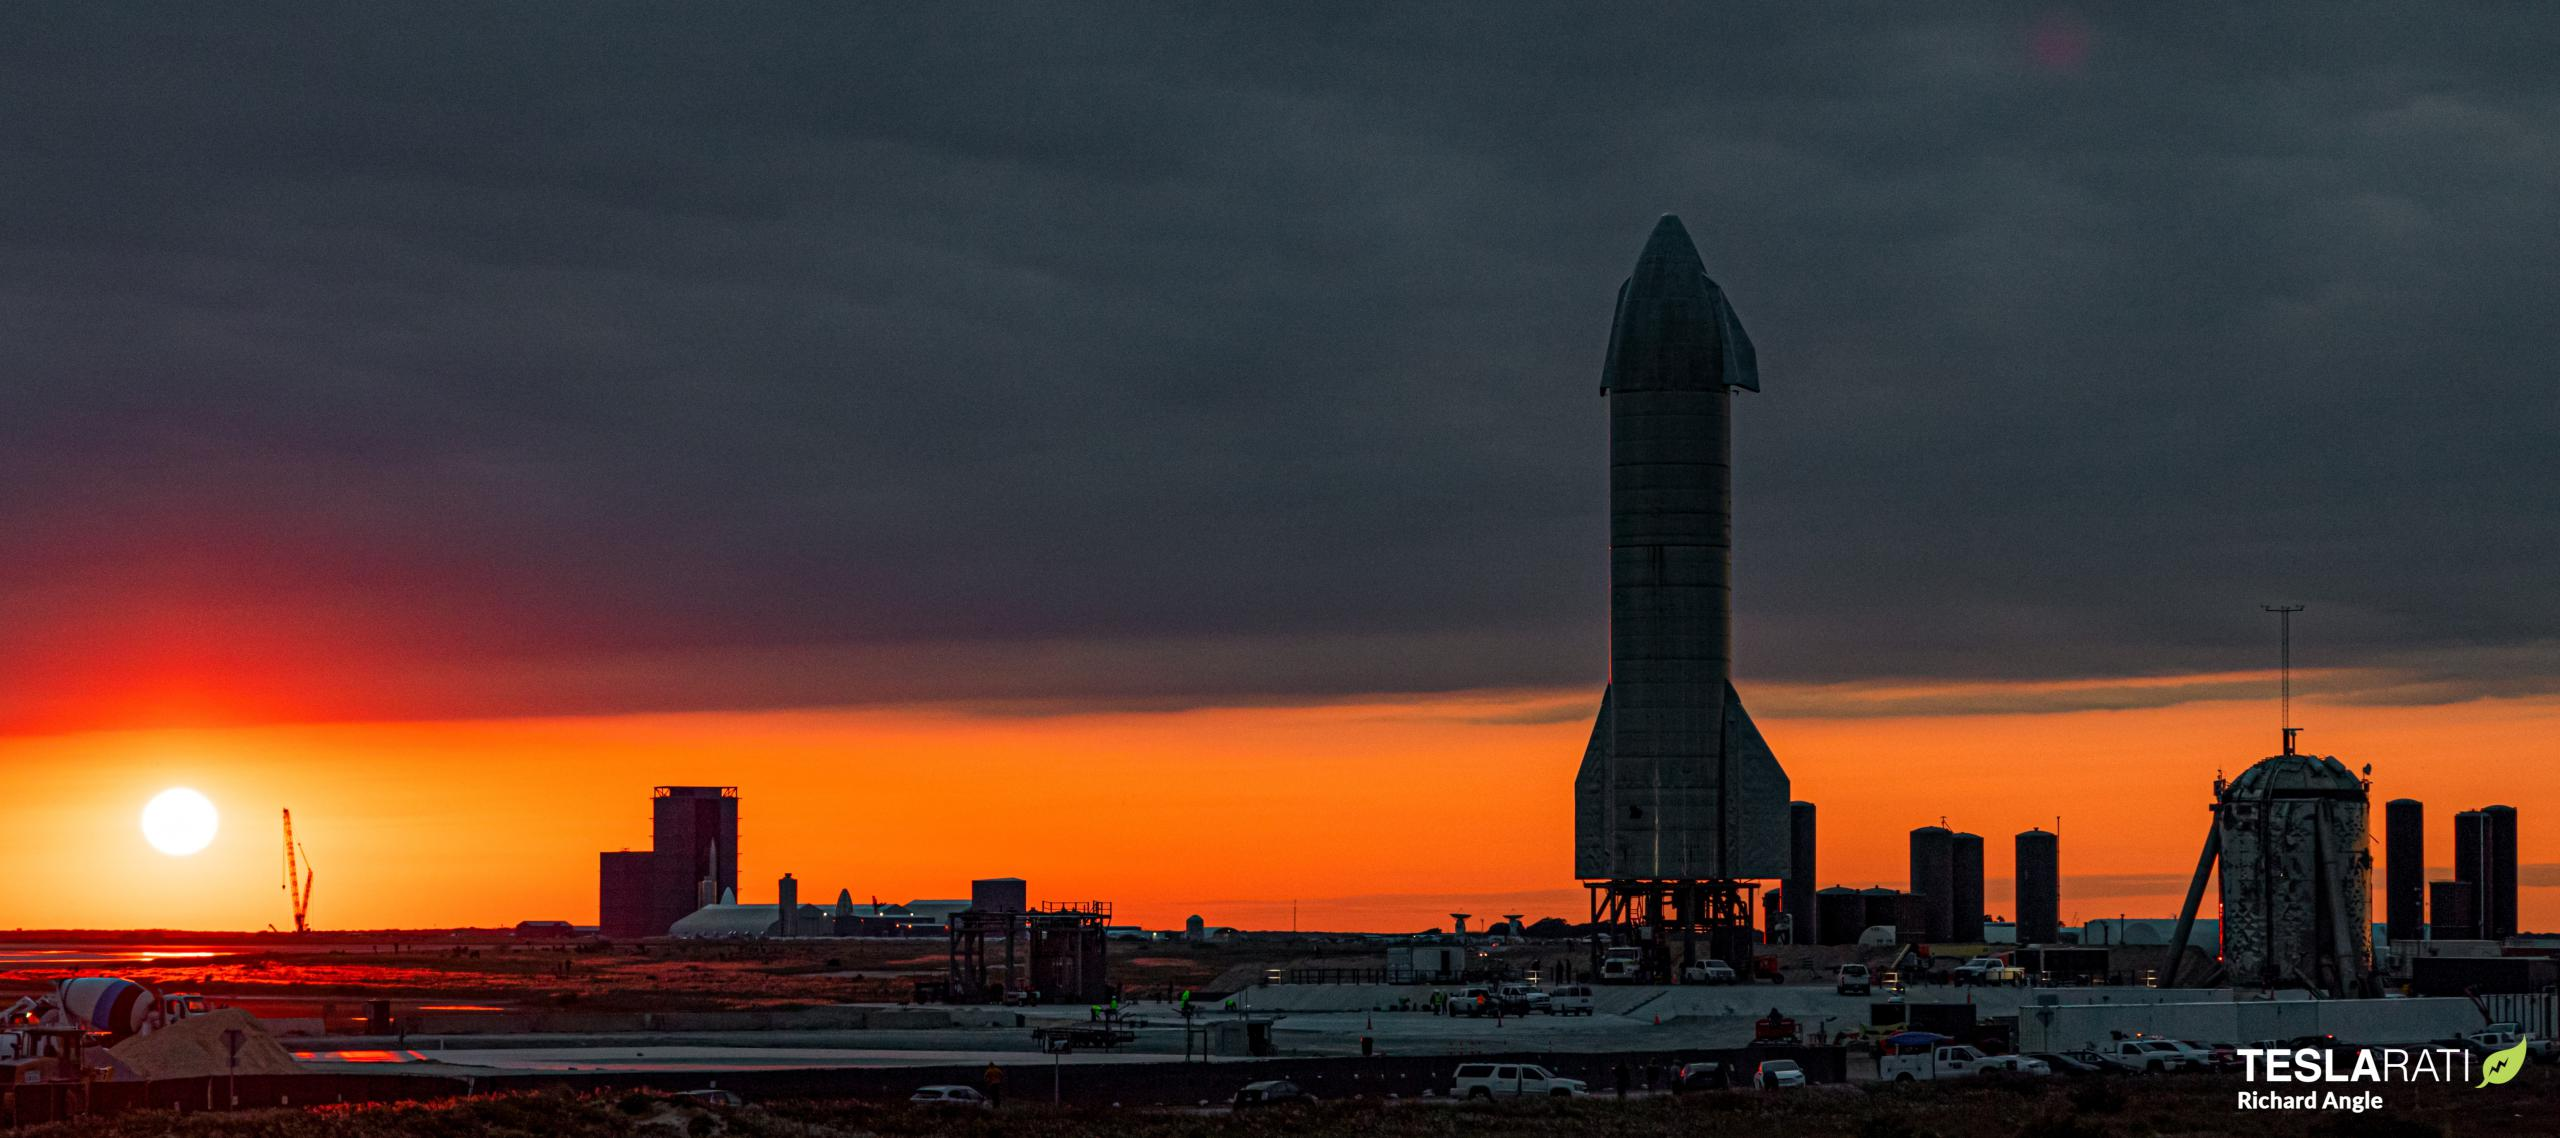 Starship Boca Chica 120320 (Richard Angle) SN8 pad + build site overview sunset 1 crop 4 (c)